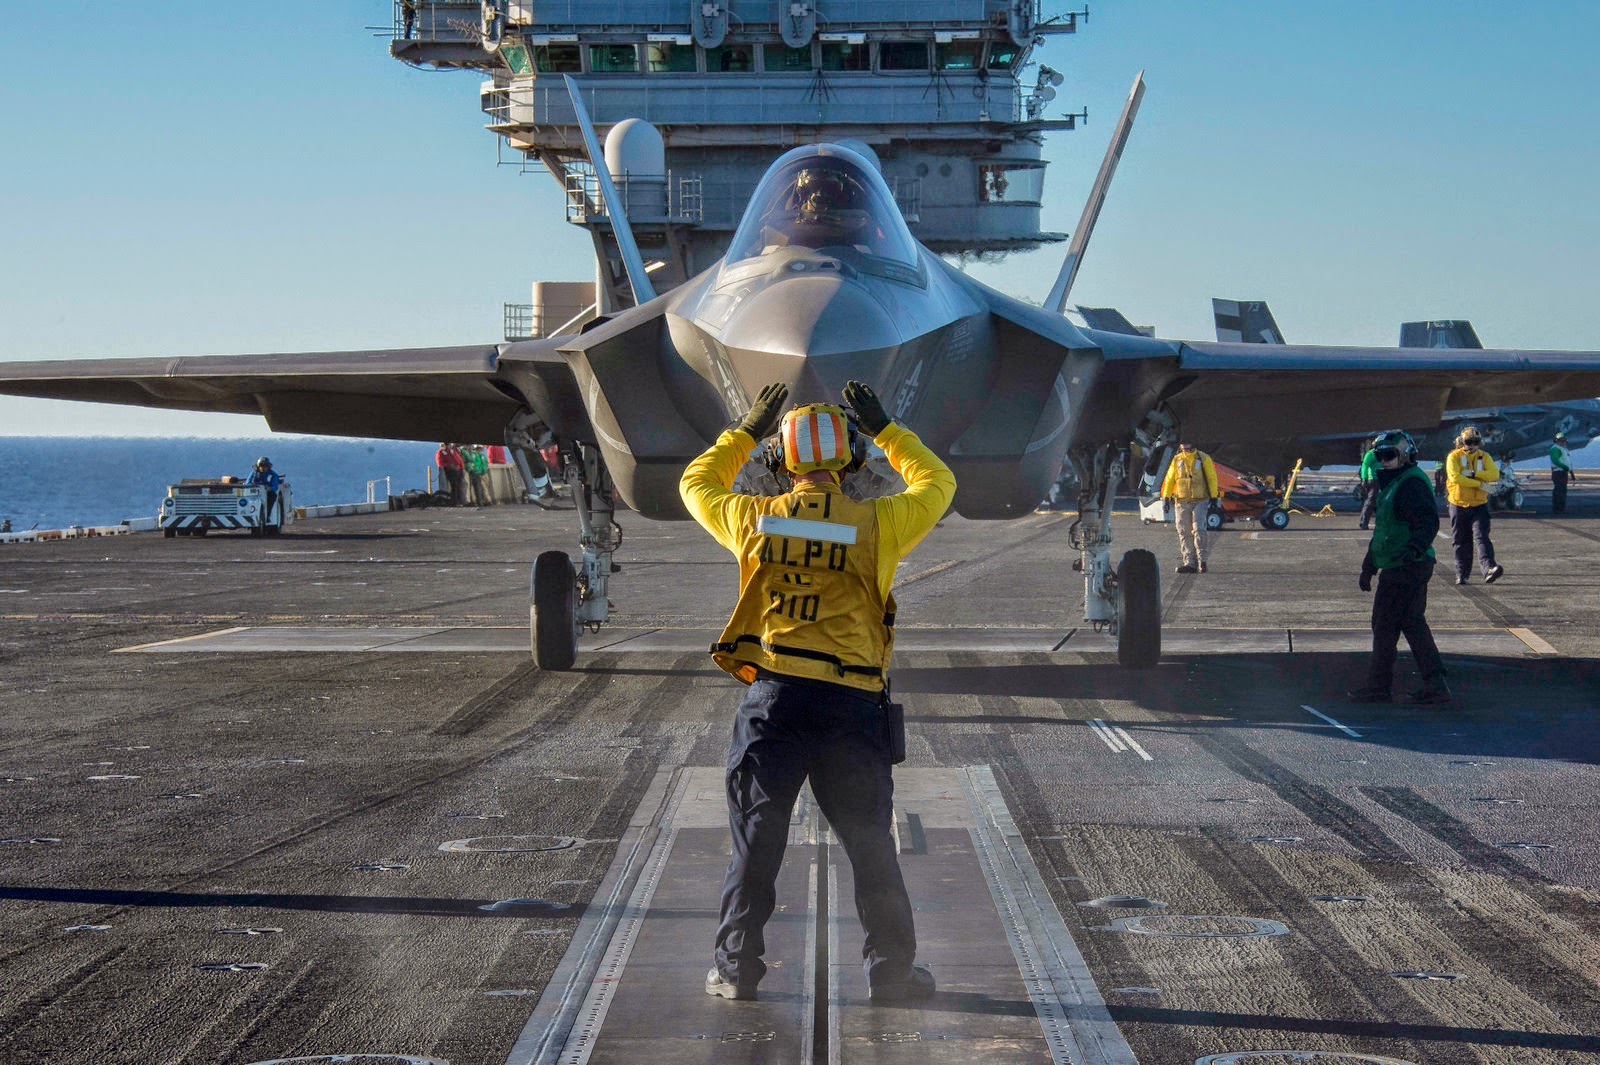 F-35 carrier takeoff